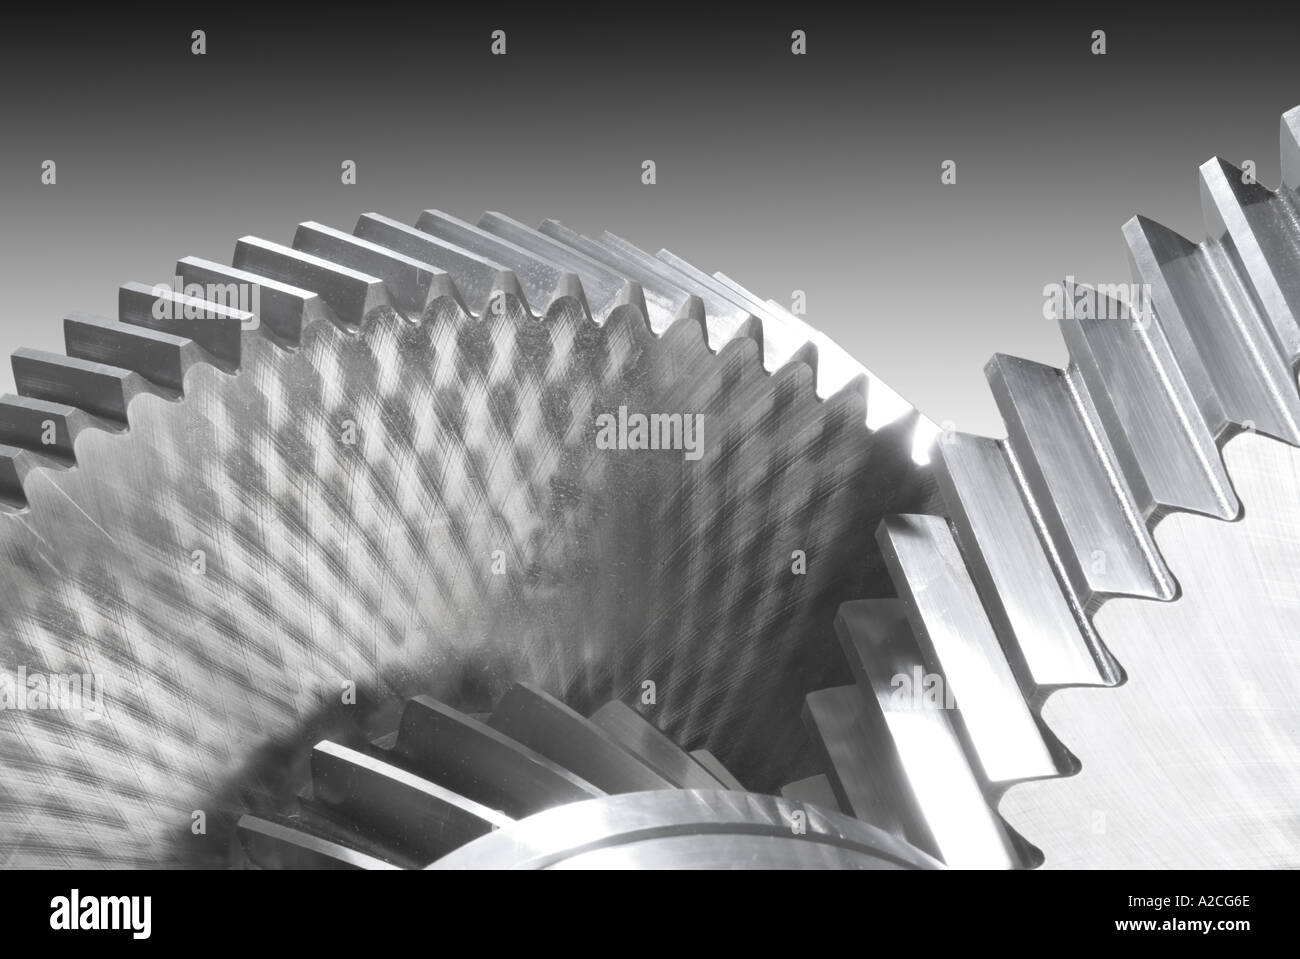 Gears Detail - Stock Image